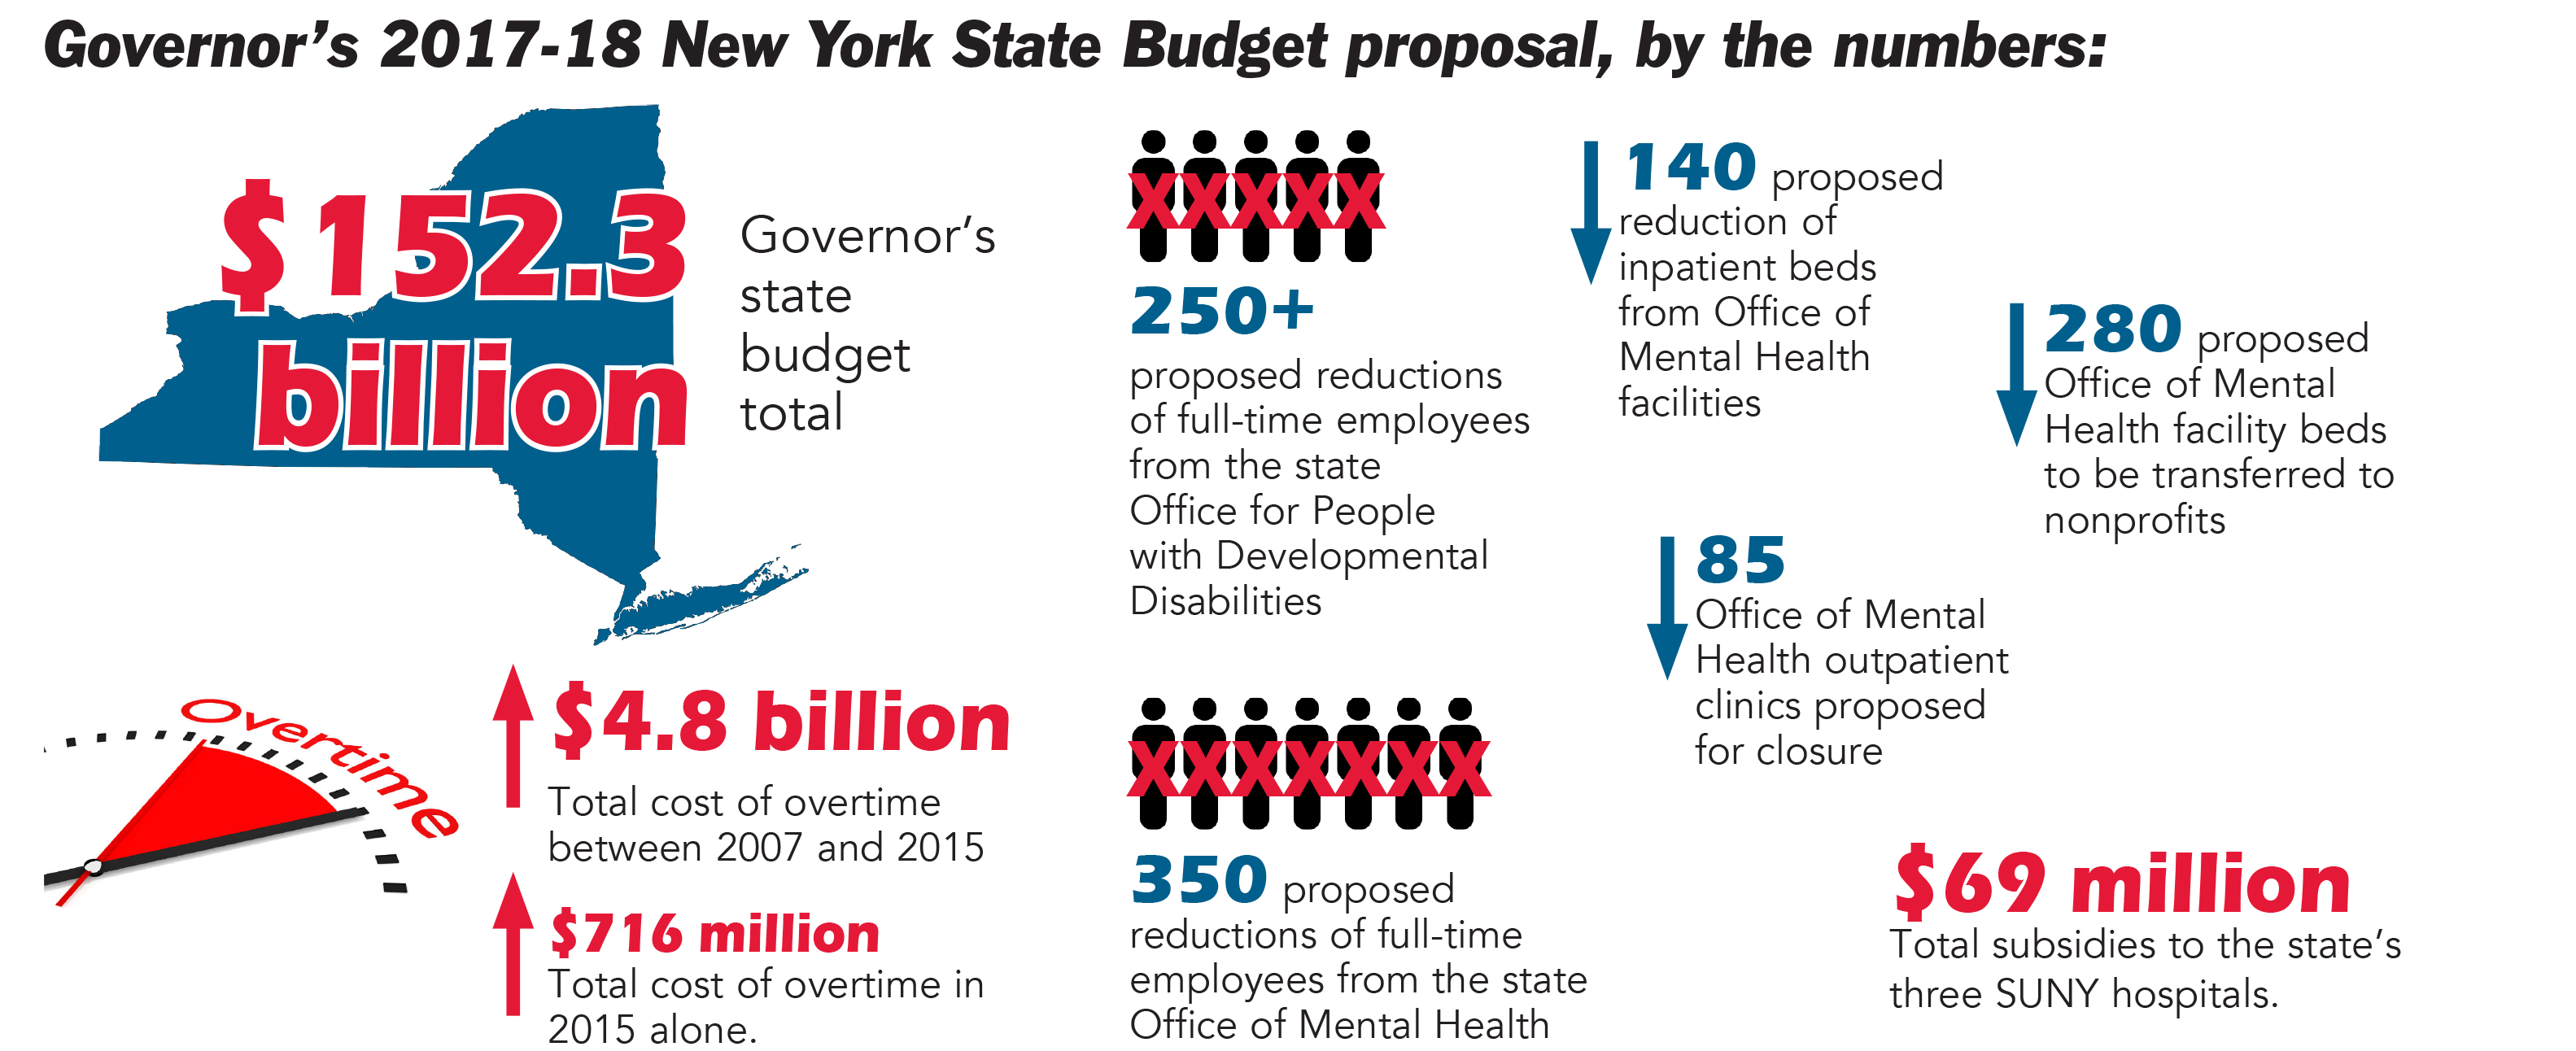 budget-proposal-usa-the-technews